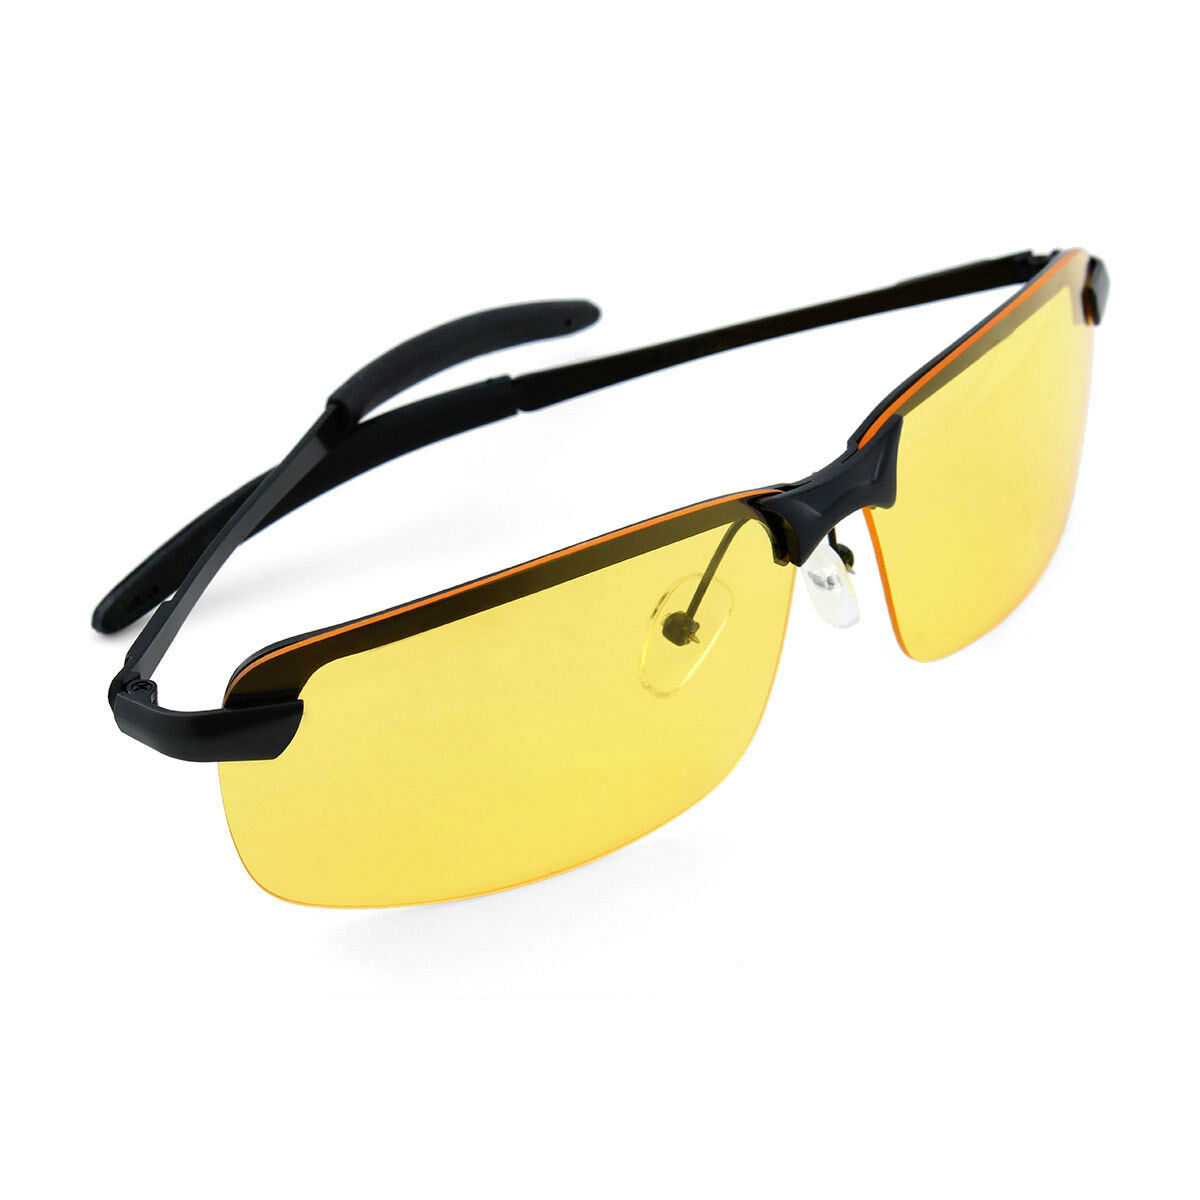 3e2699934bf Sunglasses Mens HD Polarized Anti Glare Night Driving Glasses Gents Yellow  Lens